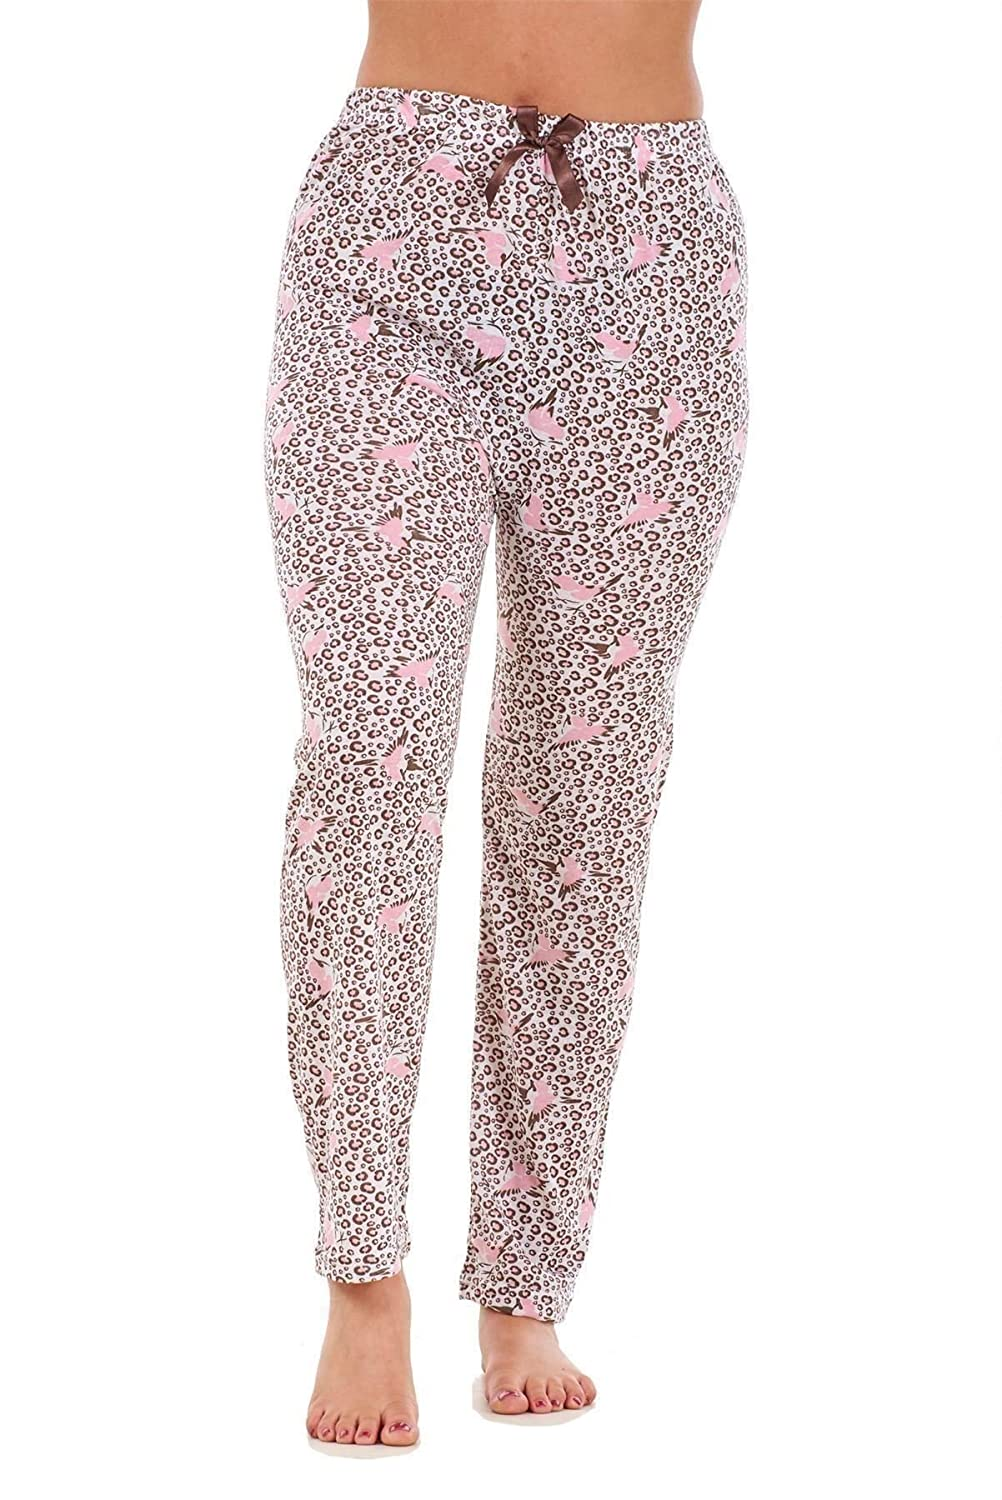 Bay eCom UK Ladies Pyjama Bottoms 100% Cotton Printed Lightweight Soft Lounge Pants M to XXL Does not Apply